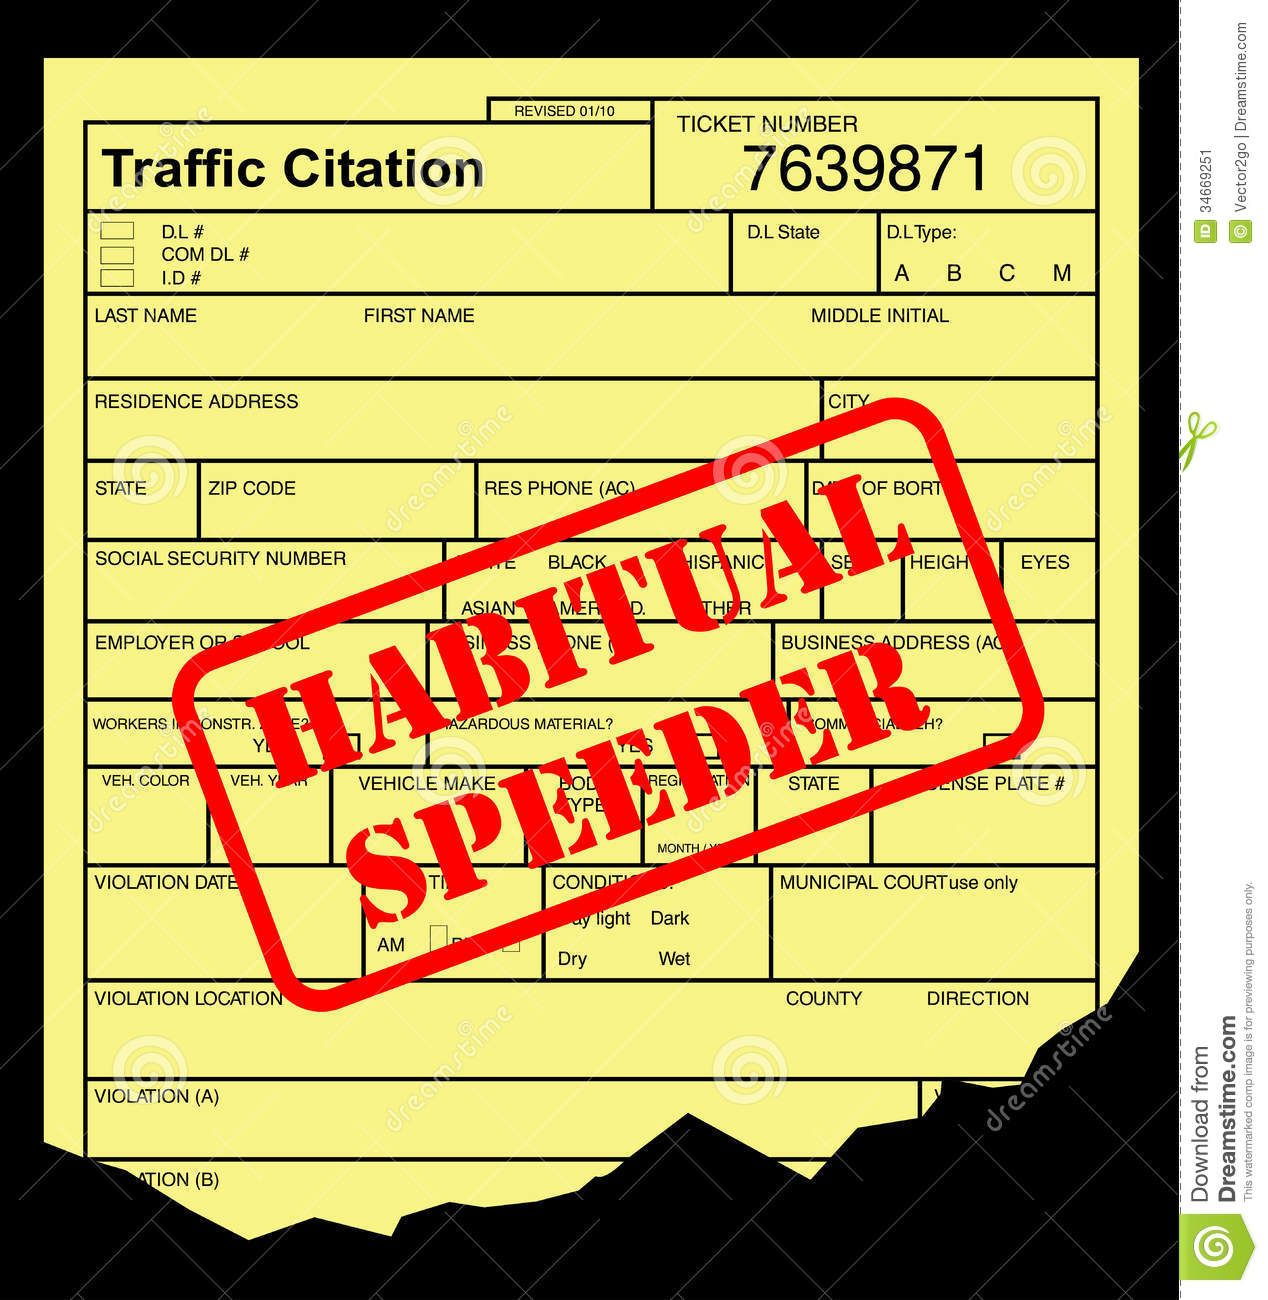 820840b318dd73d25a241cd395d85275 - How To Get A Restricted License In Ca After Dui